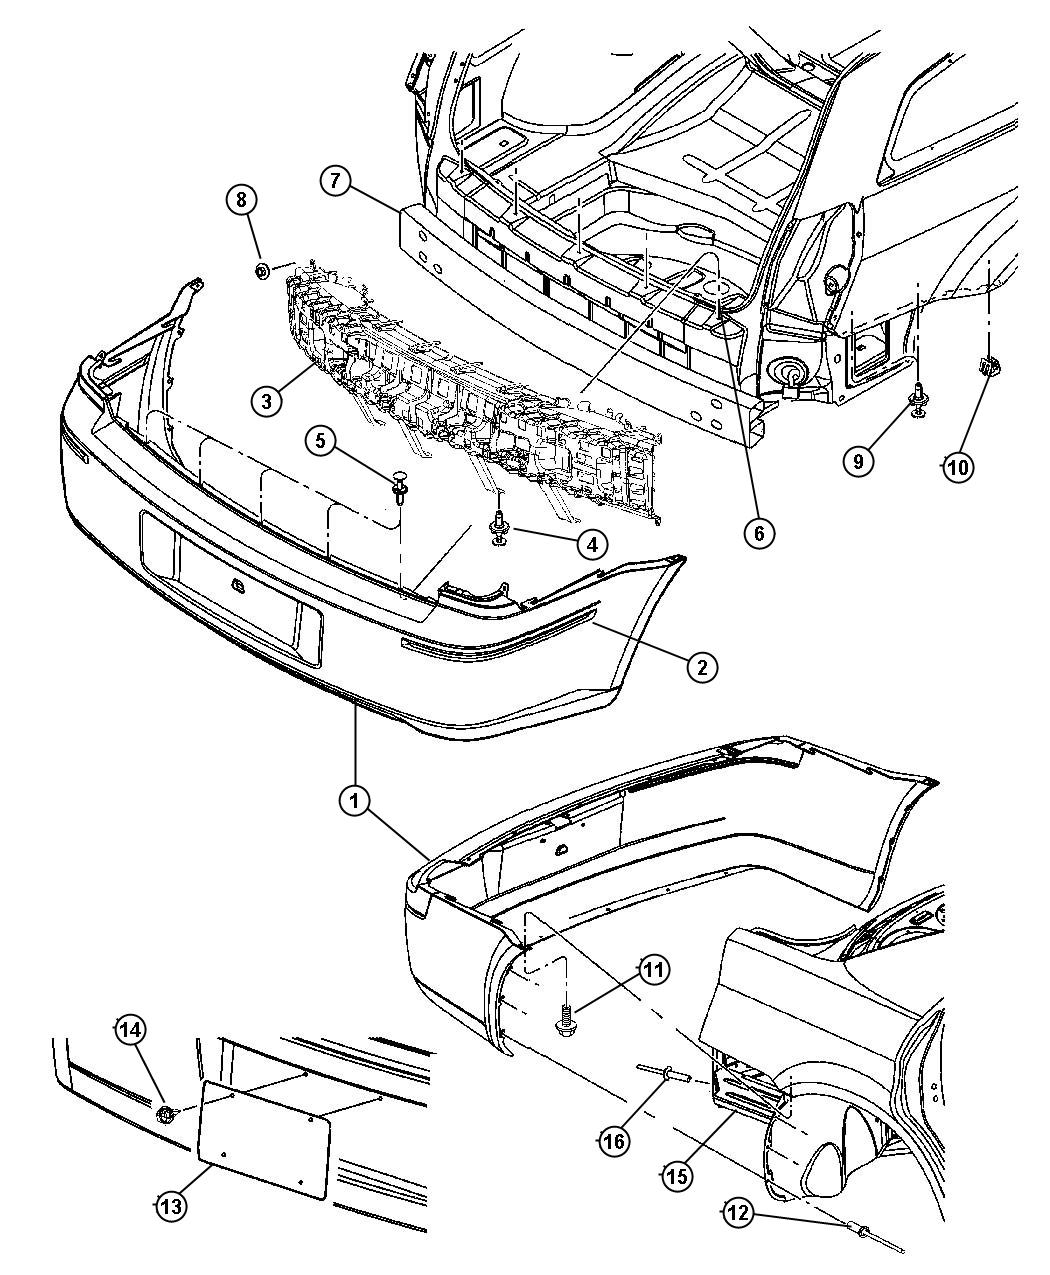 2005 Dodge Ram Tail Light Parts Diagram Wiring Diagram Photos For